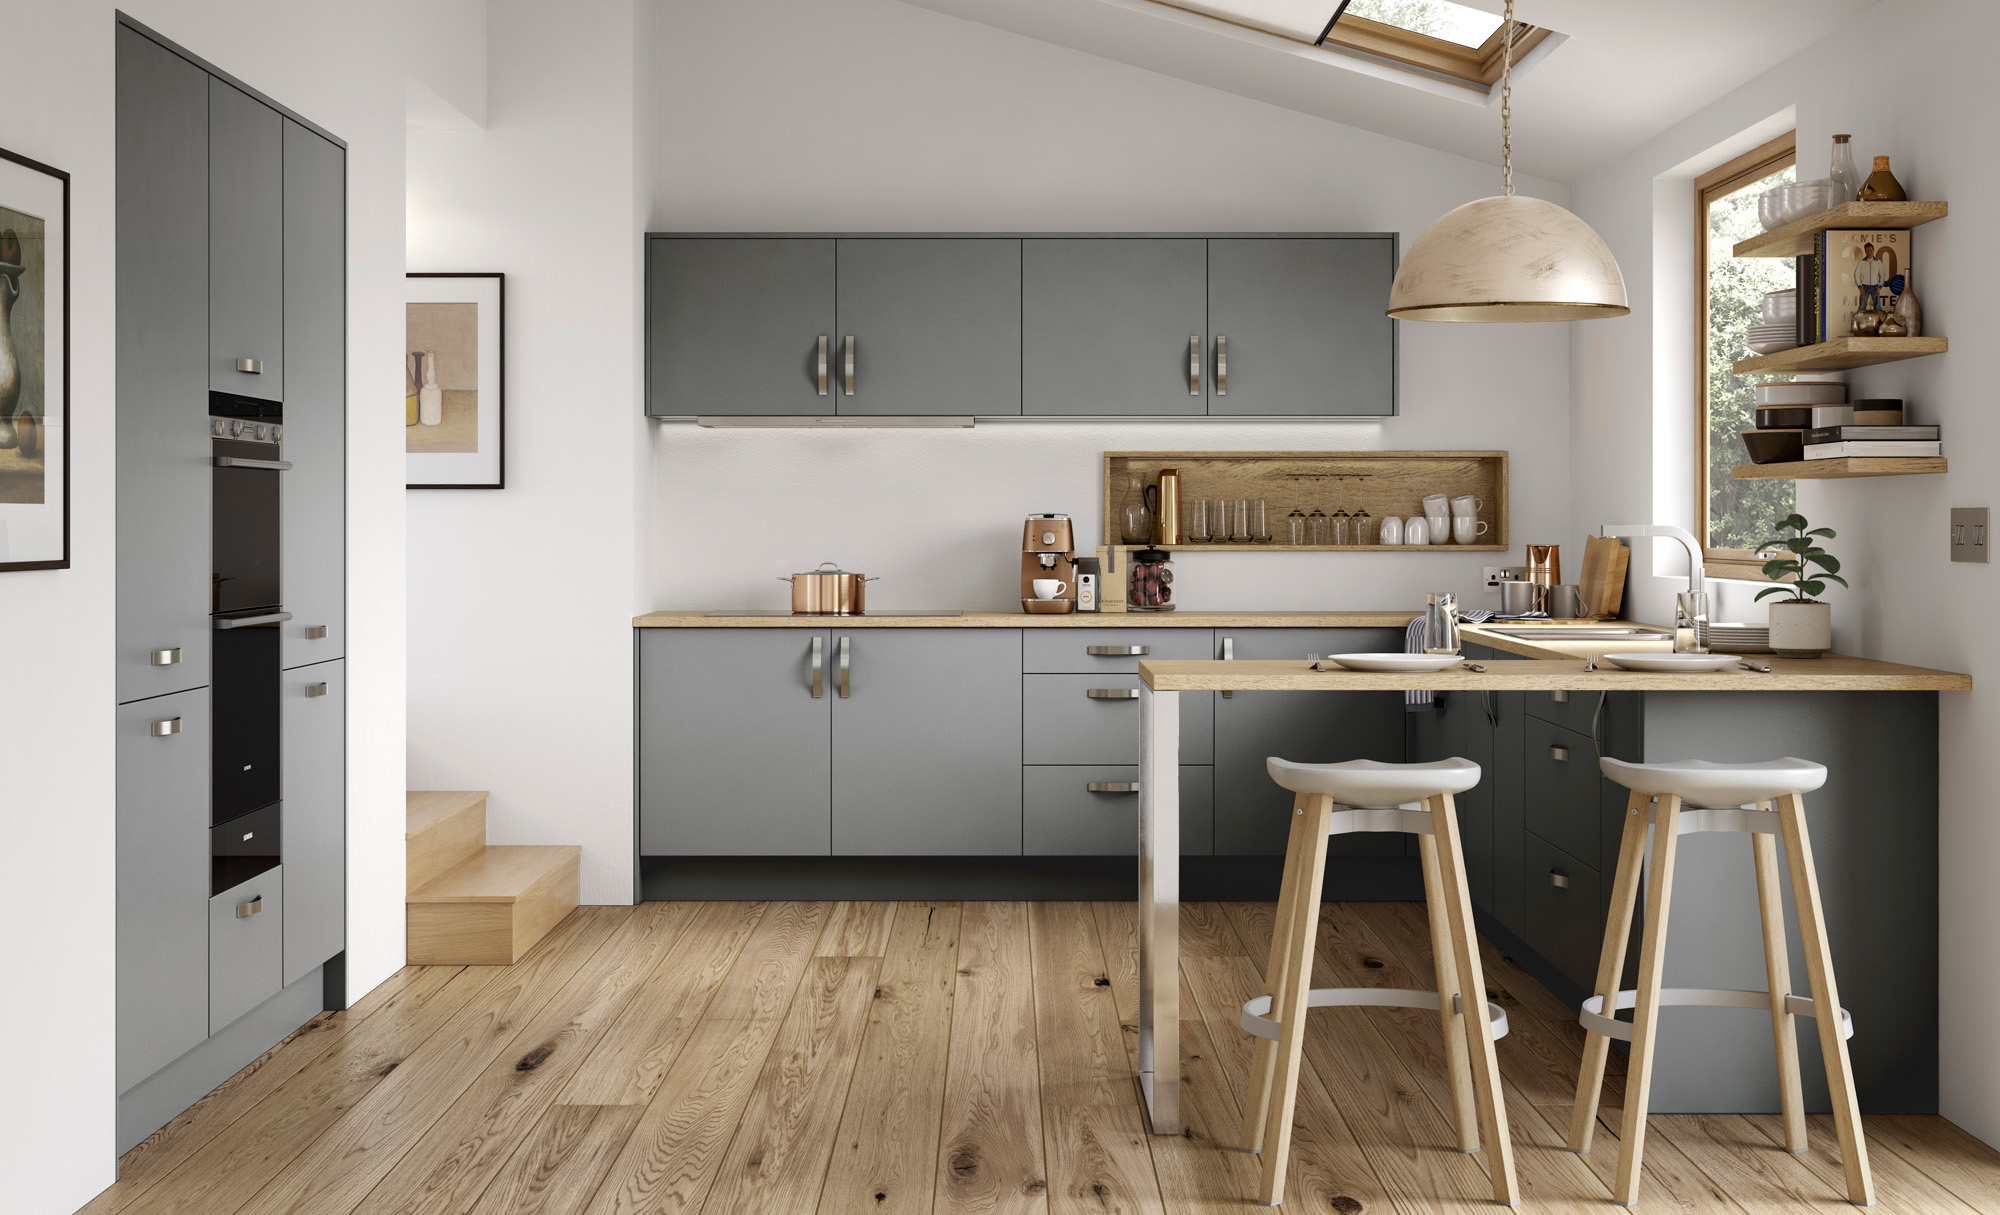 Zola - Matt grey kitchen doors